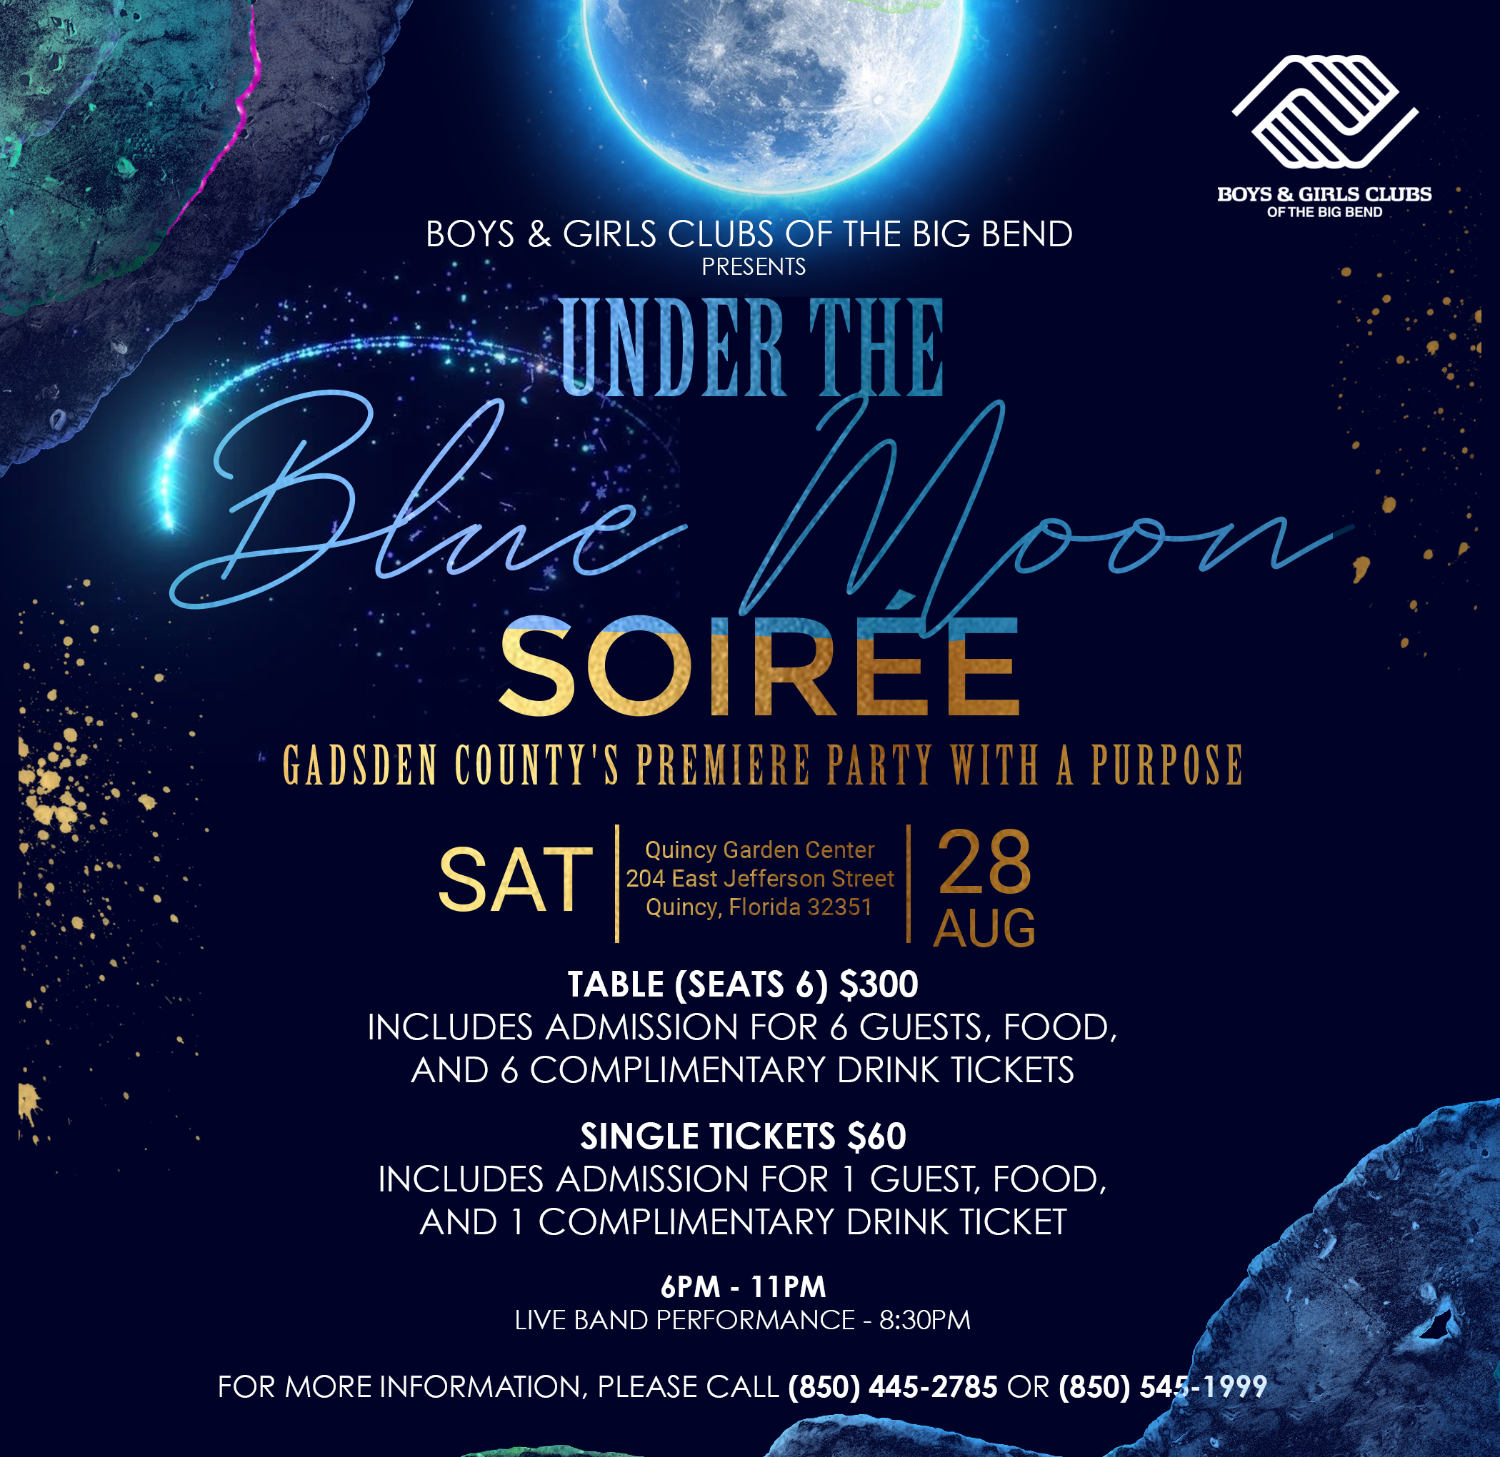 Under The Blue Moon Soiree